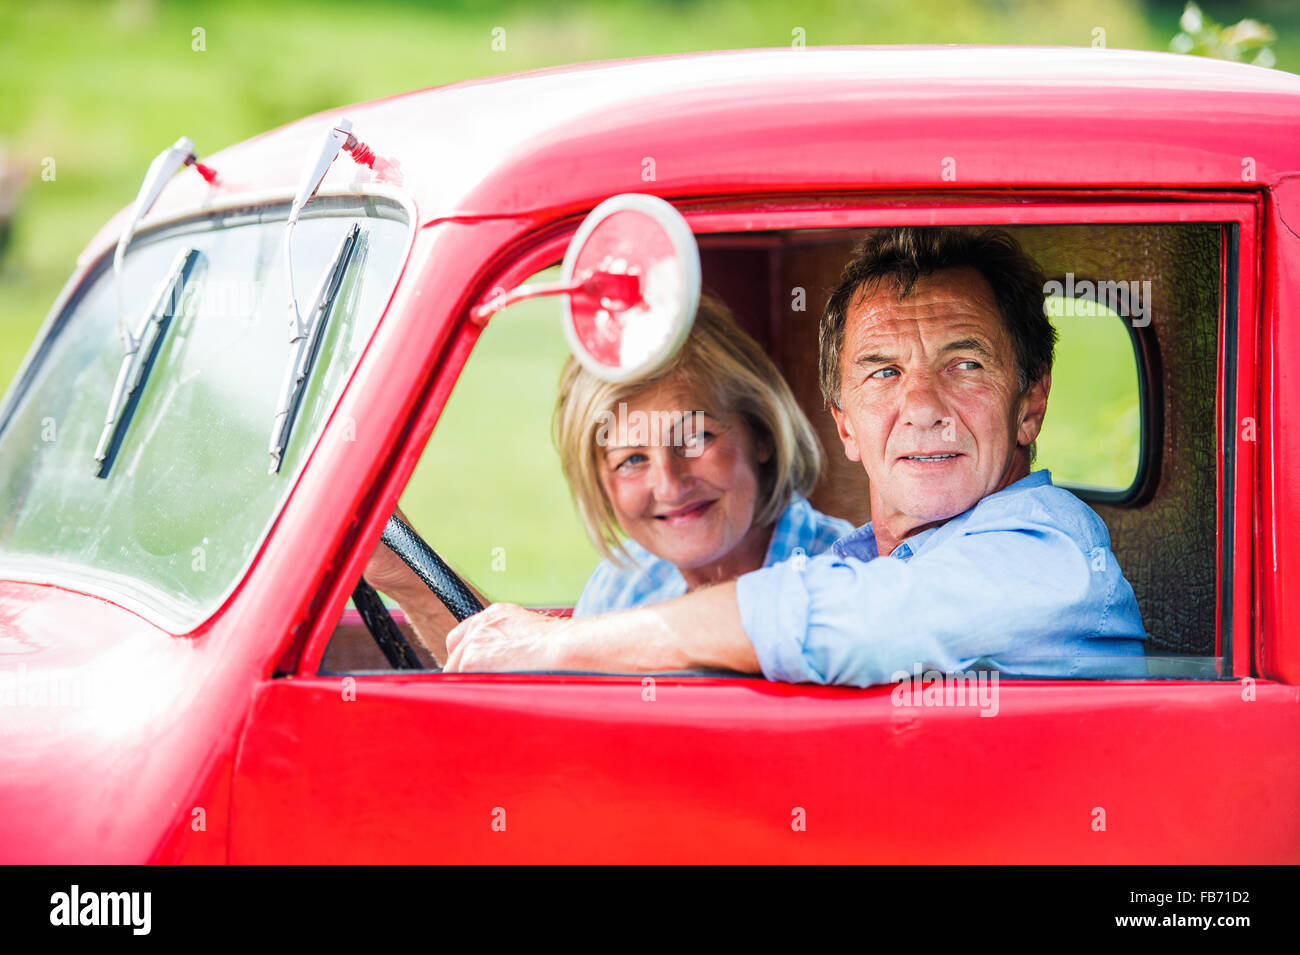 Senior couple in red car - Stock Image